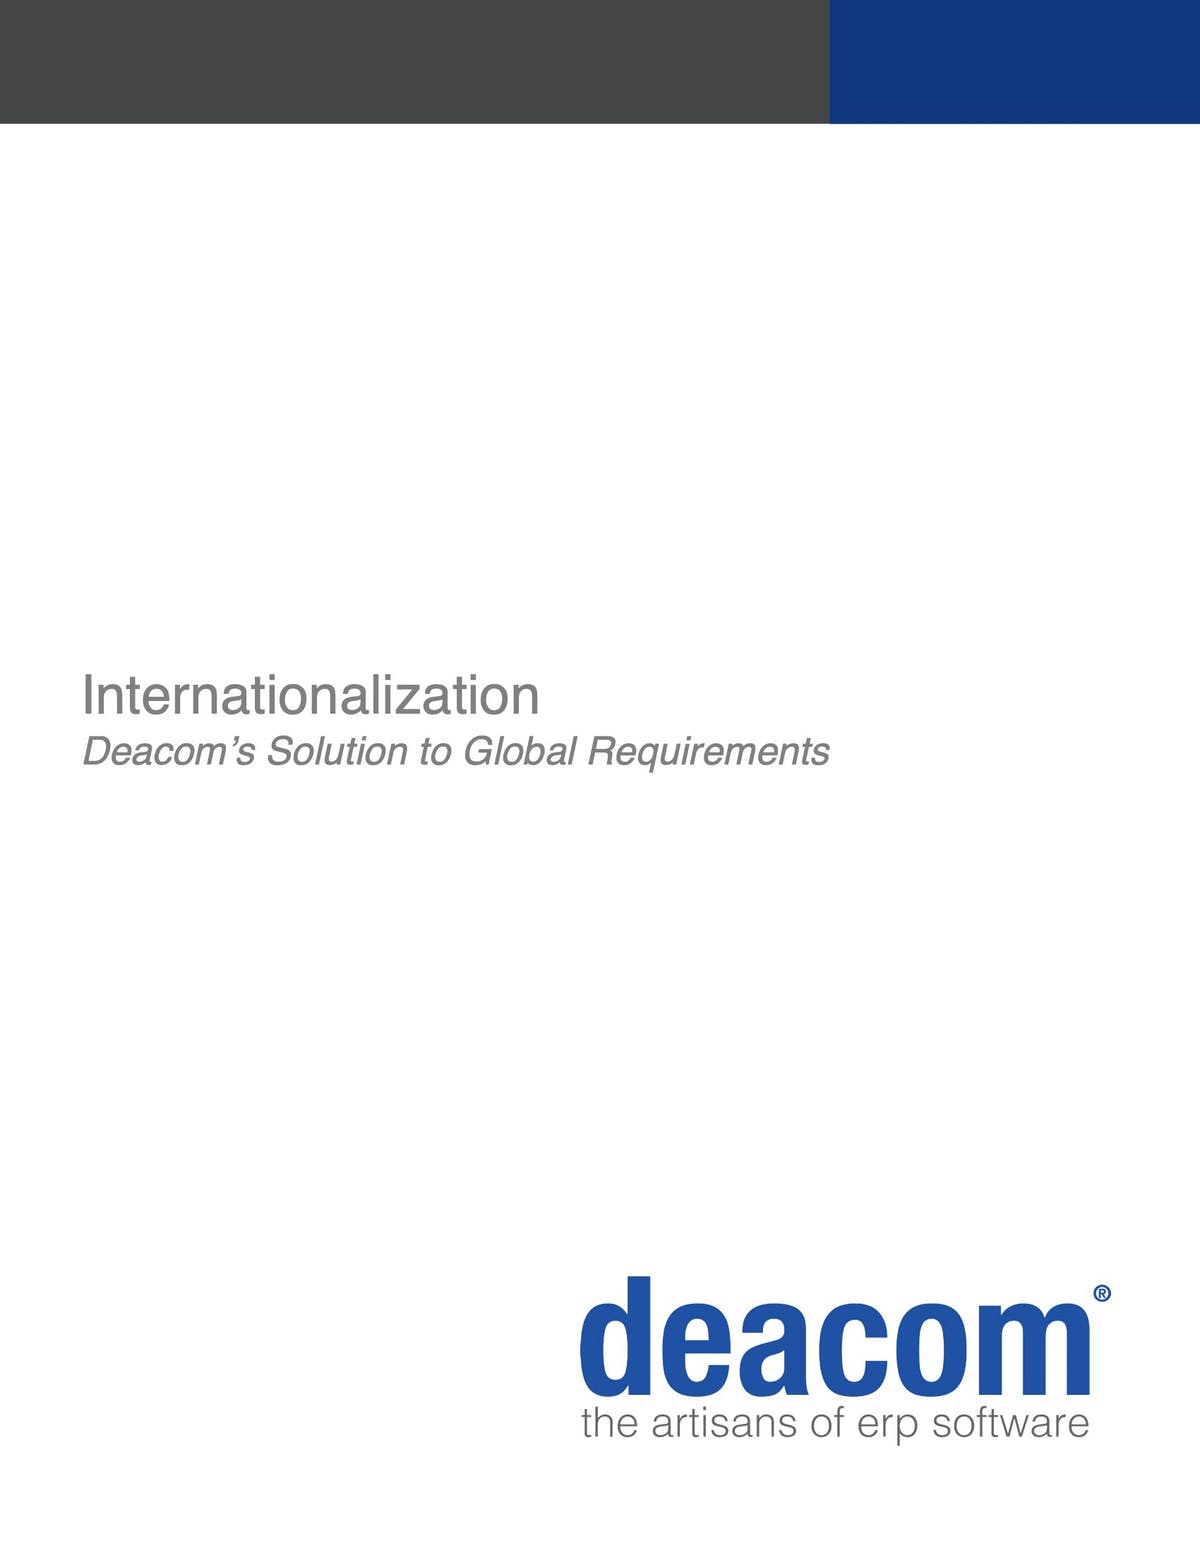 DEACOM ERP White Paper - Internationalization: The Deacom Solution to Global Requirements